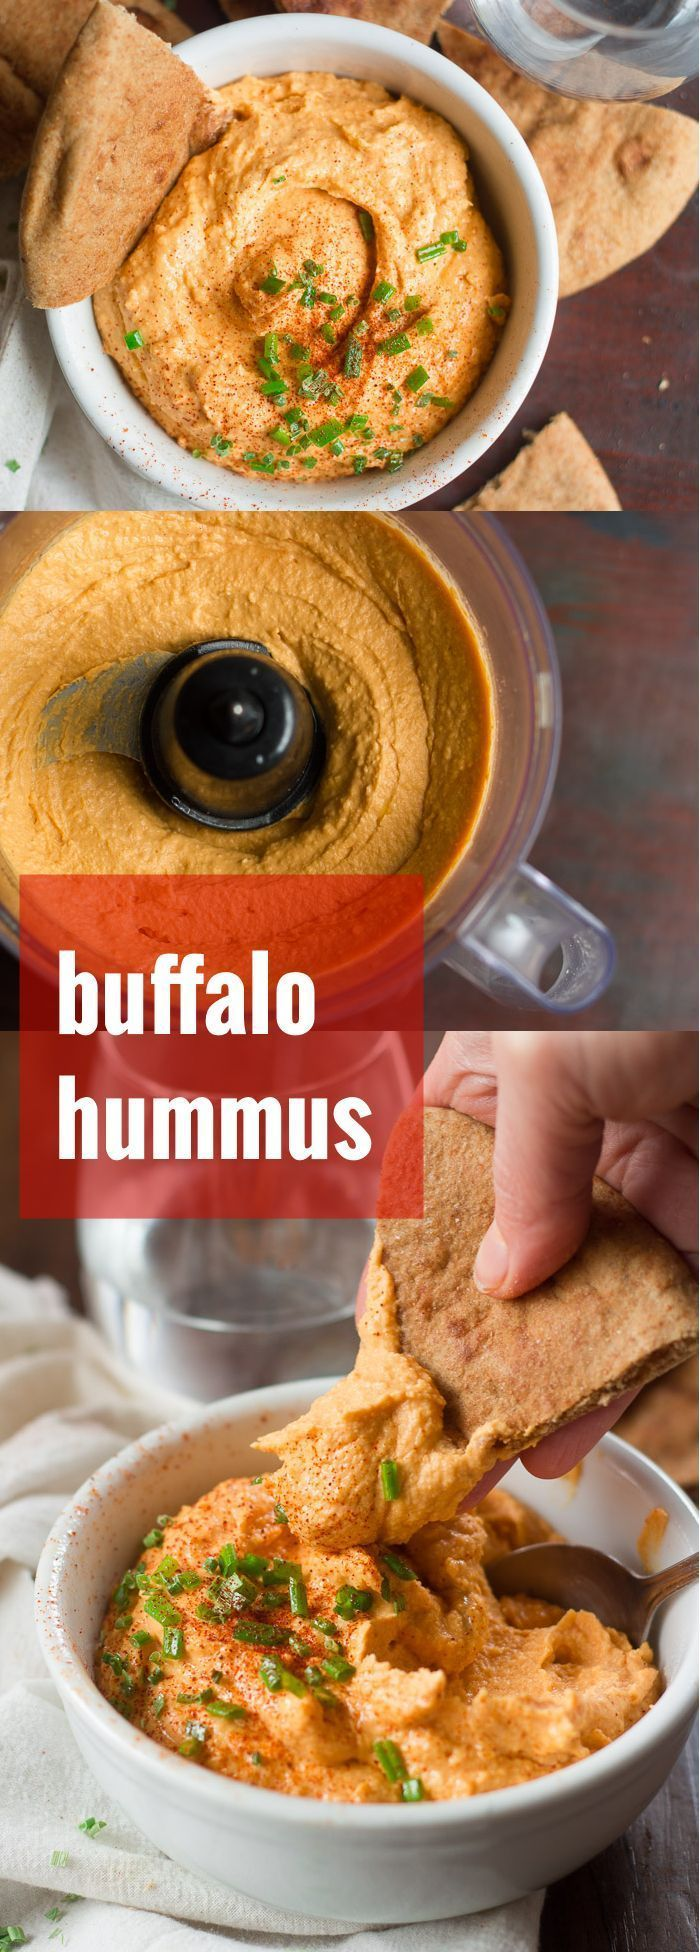 Creamy, garlicky hummus gets a kick, with the addition of spicy Buffalo sauce! This Buffalo hummus is perfect for game day (or any day) snacking!